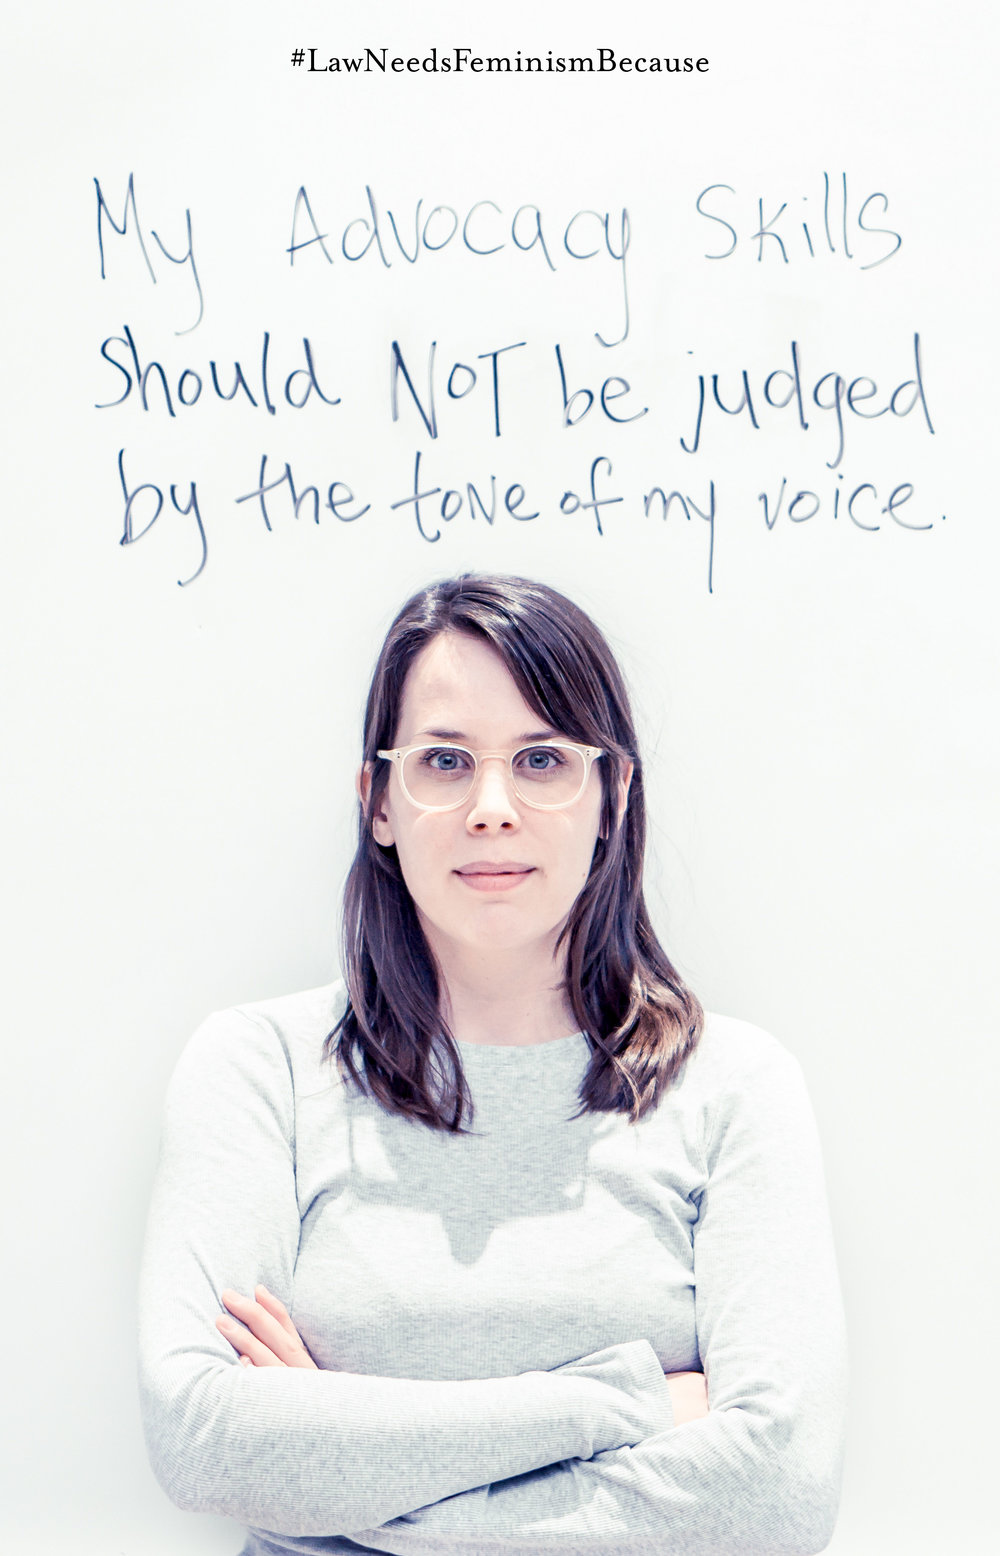 "Law Needs Feminism Because : ""my advocacy skills should NOT be judged by the tone of my voice."""